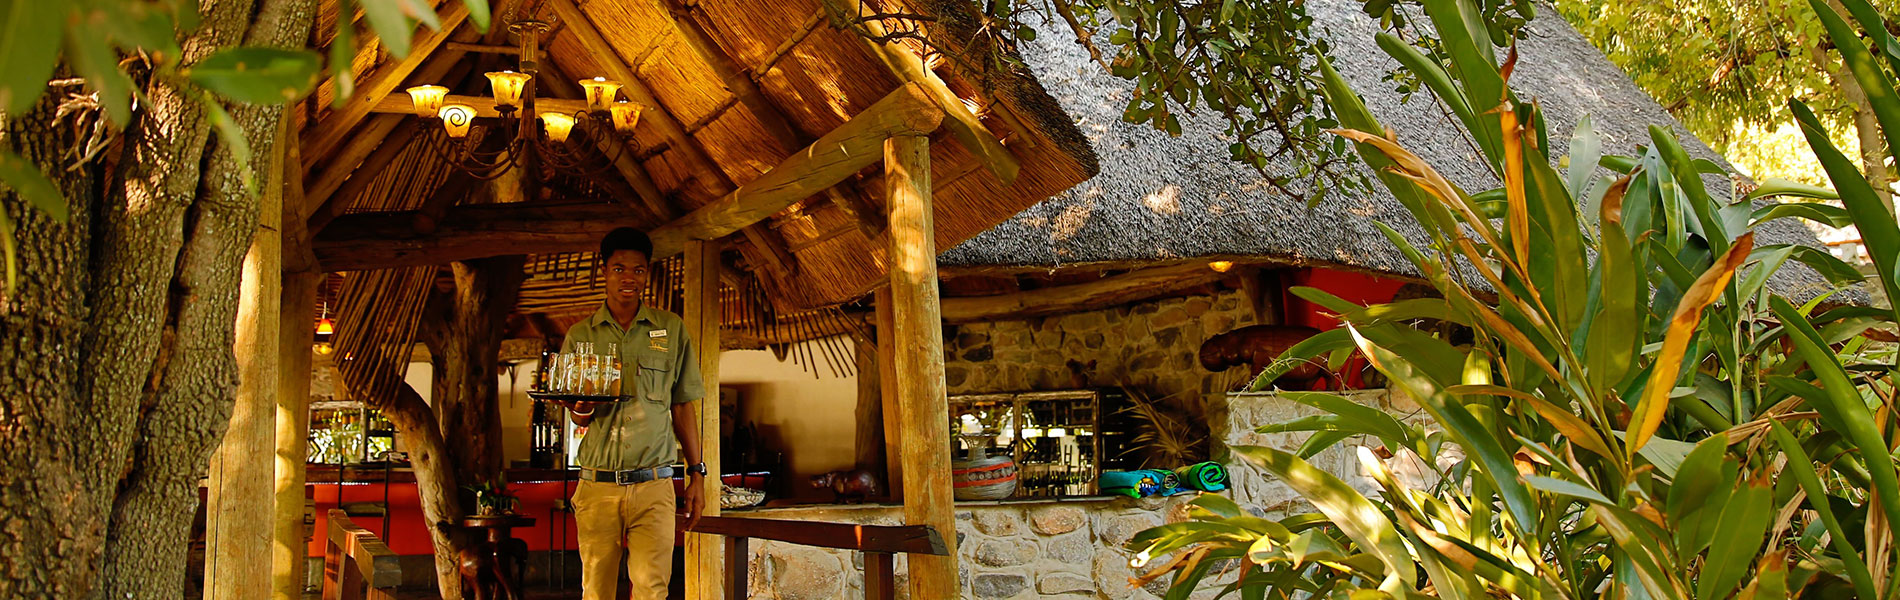 Thamalakane River Lodge - Restaurant